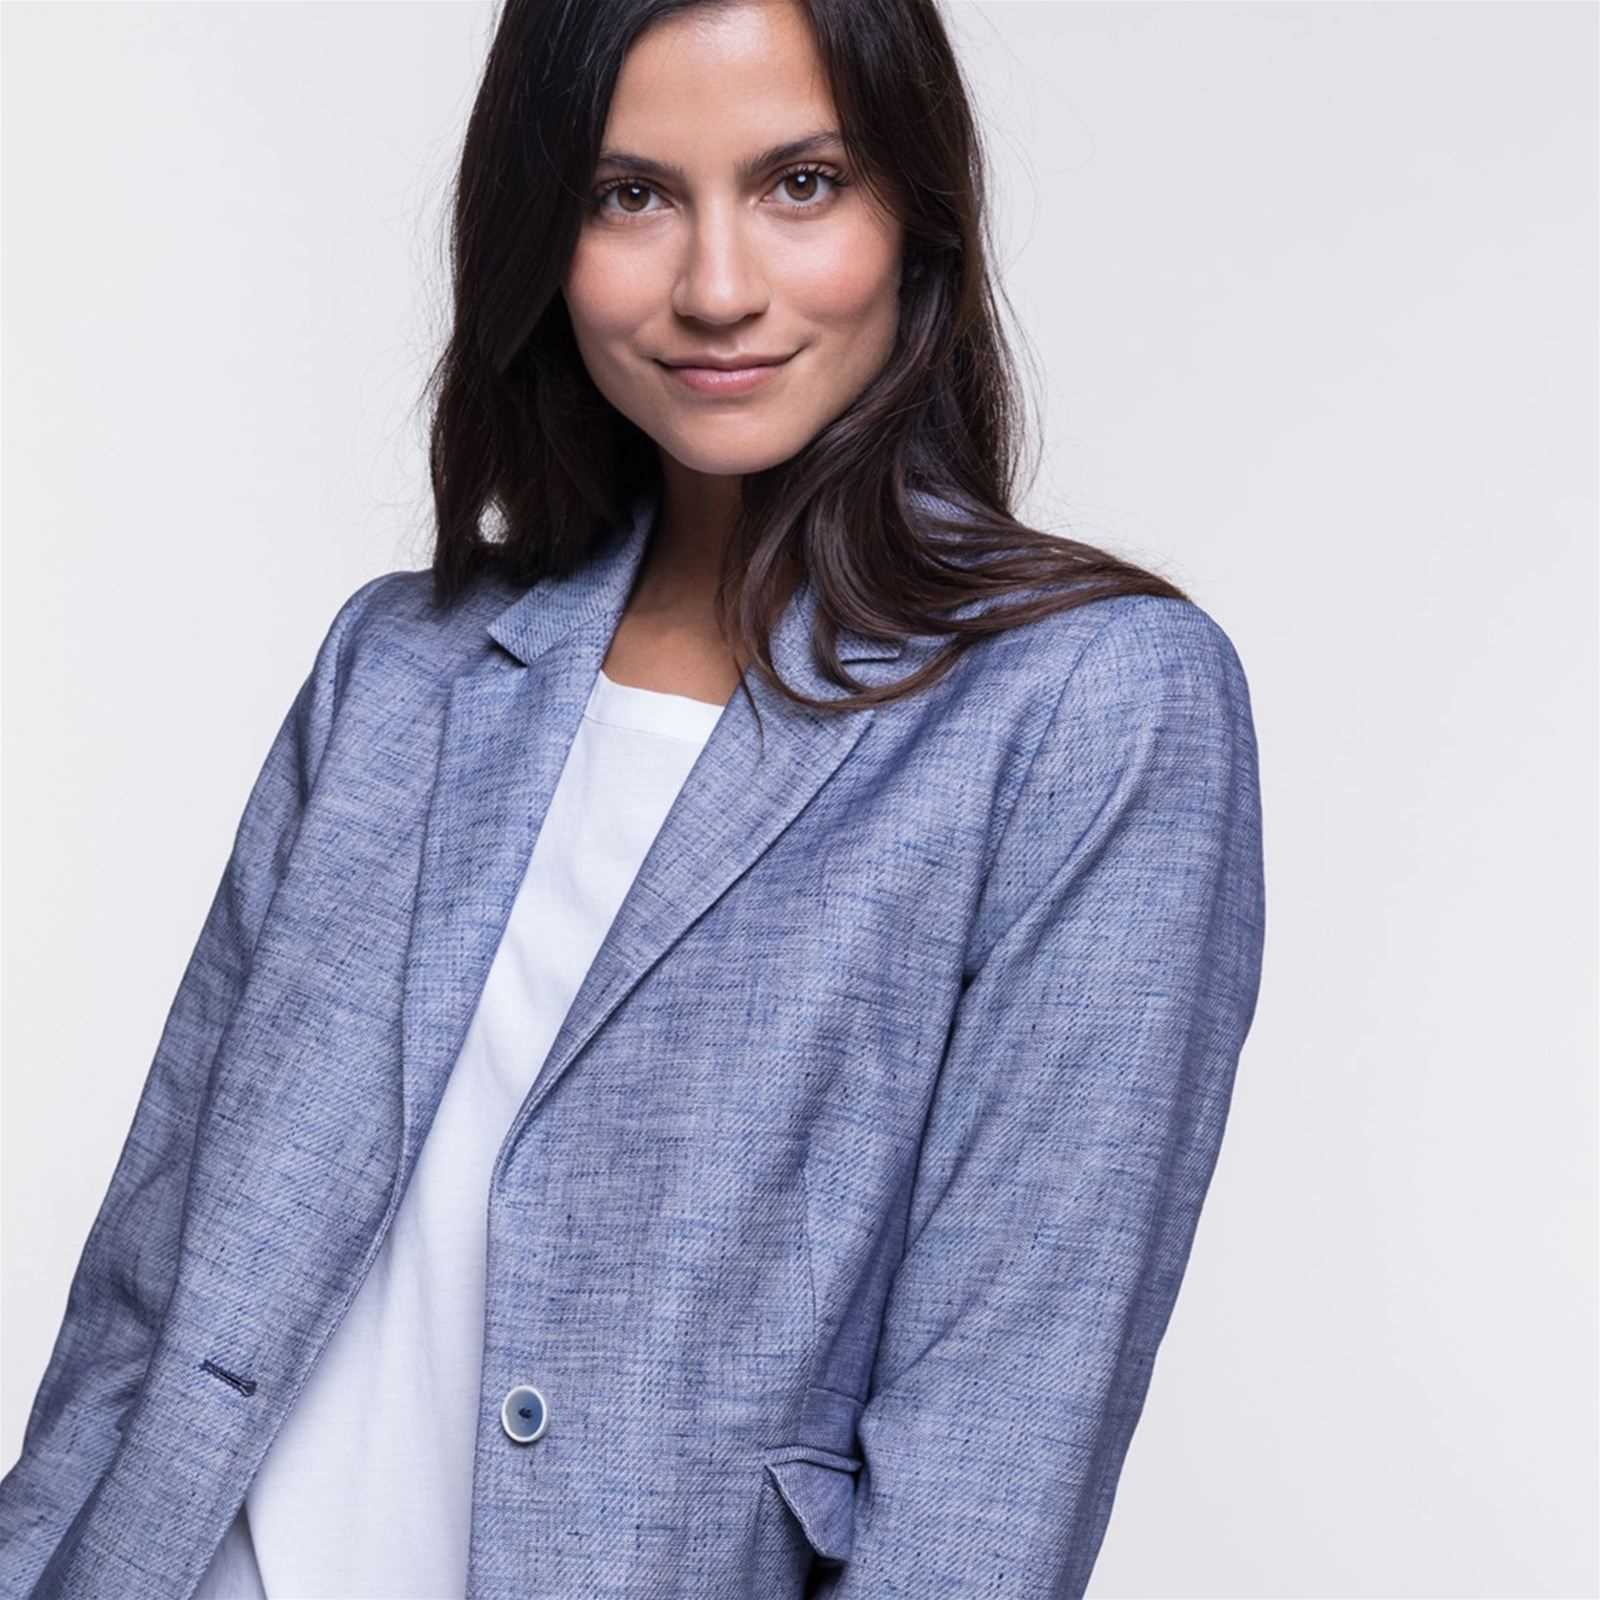 d76a97a73dce Trench and coat Veste cintré en tissu chambray 40% lin - bleu ...